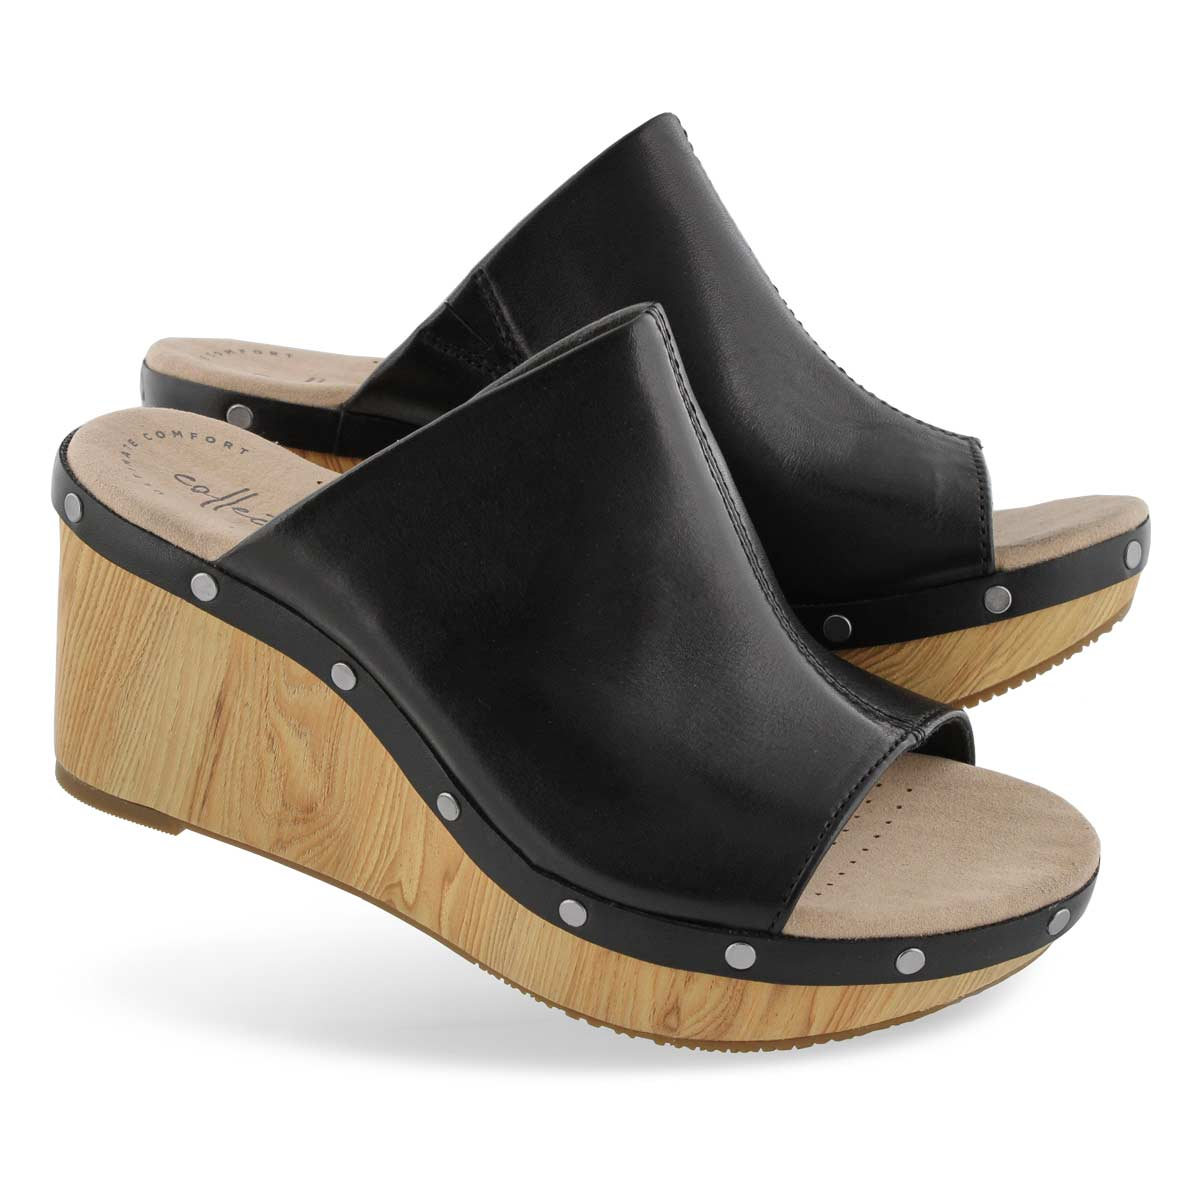 Lds Annadel Molly black wedge sandal